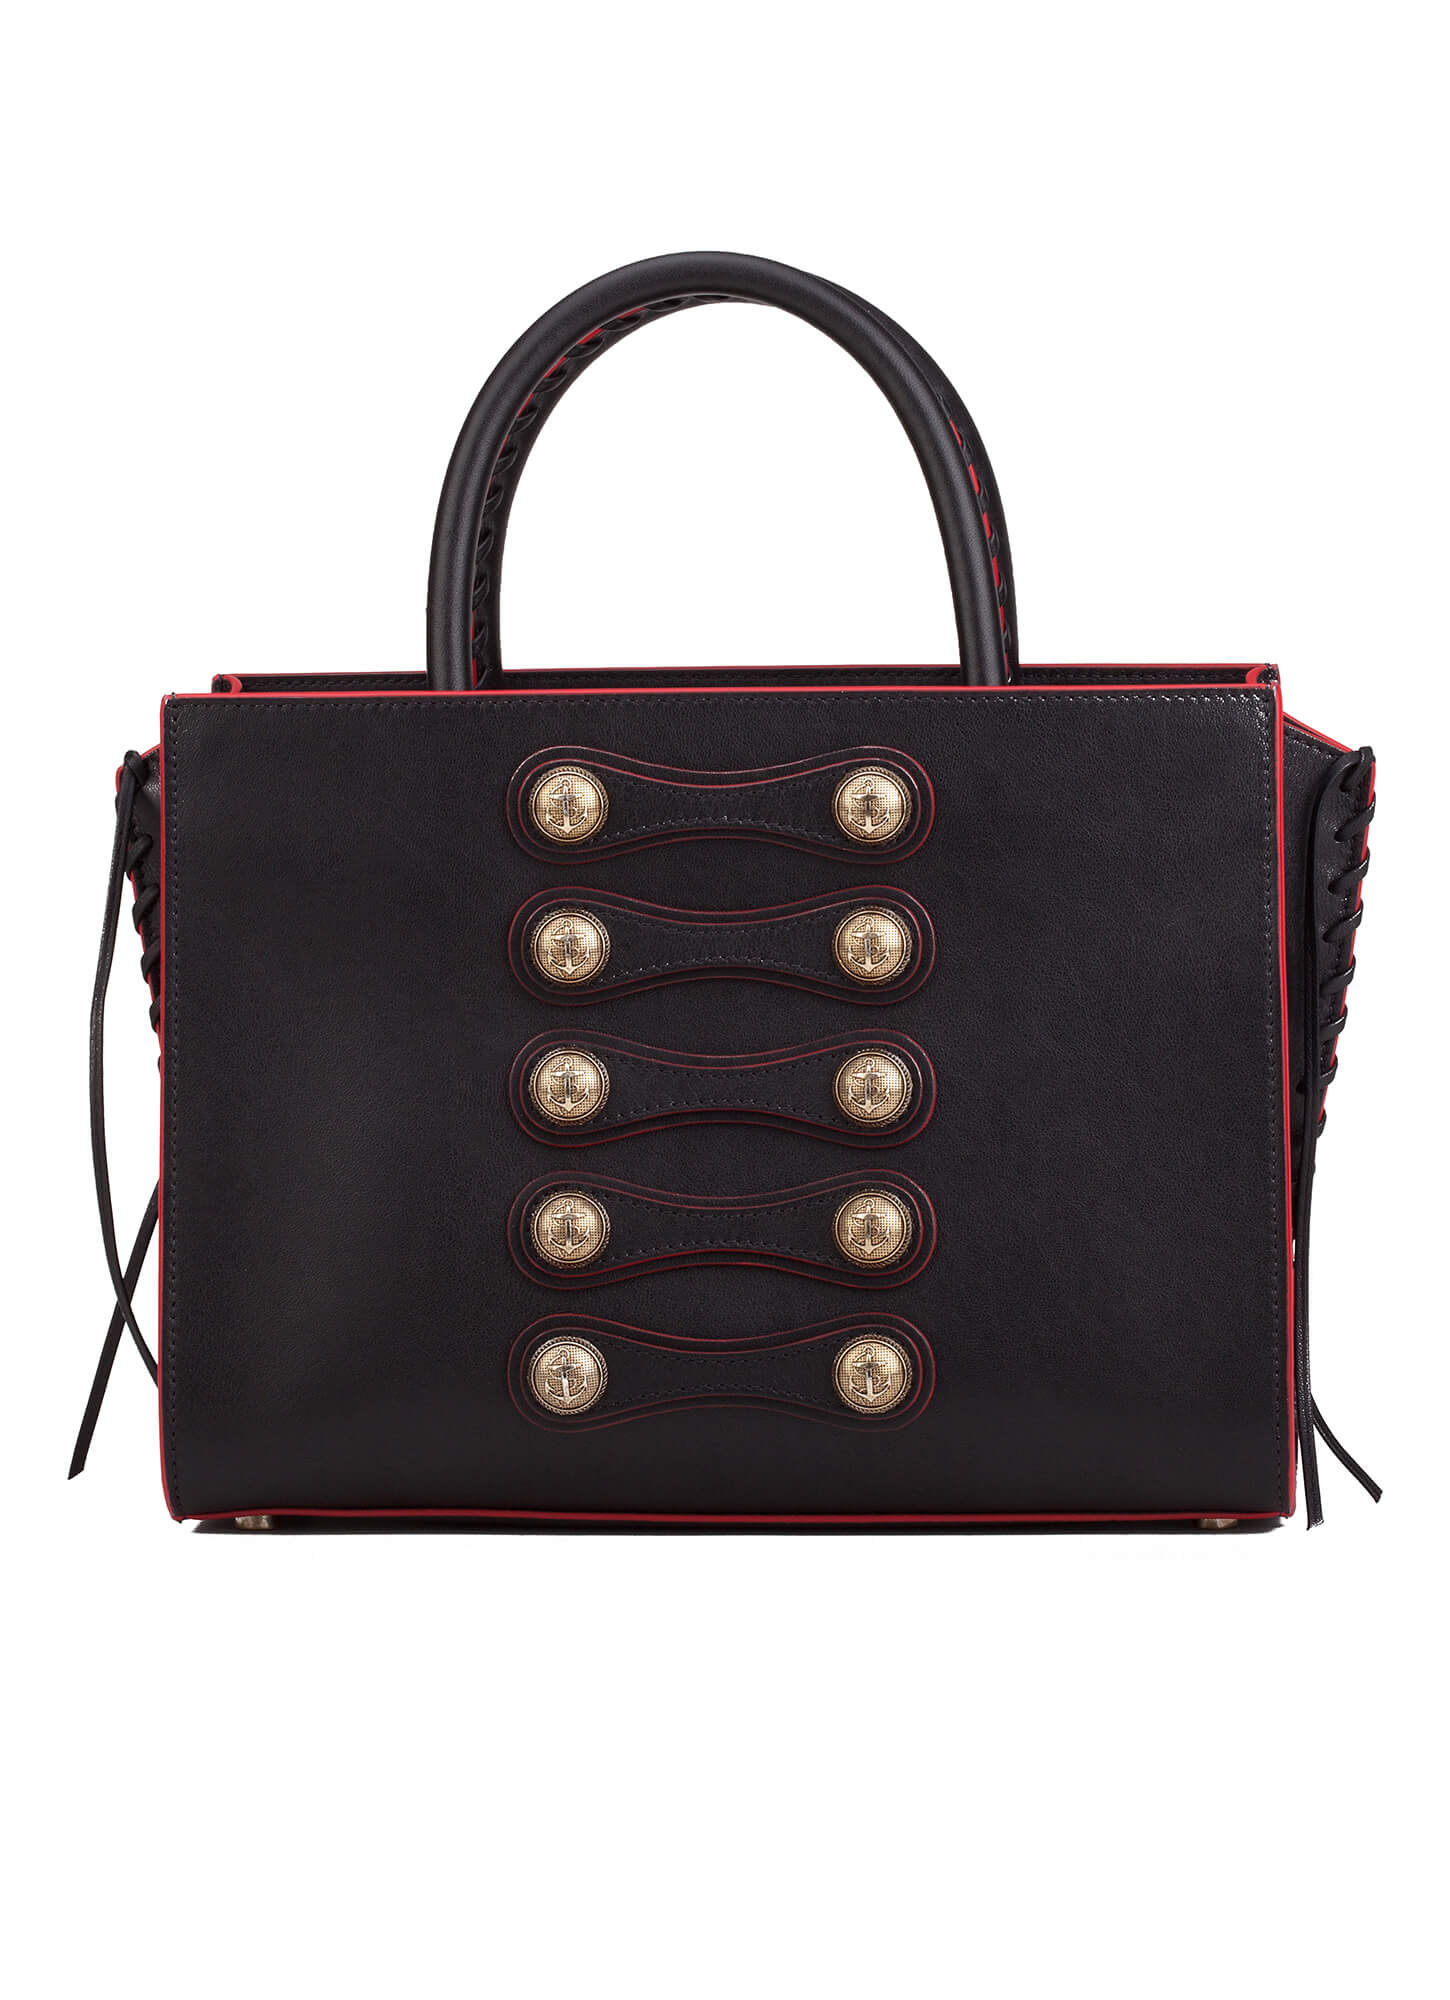 On Detailed Bag In Black Leather